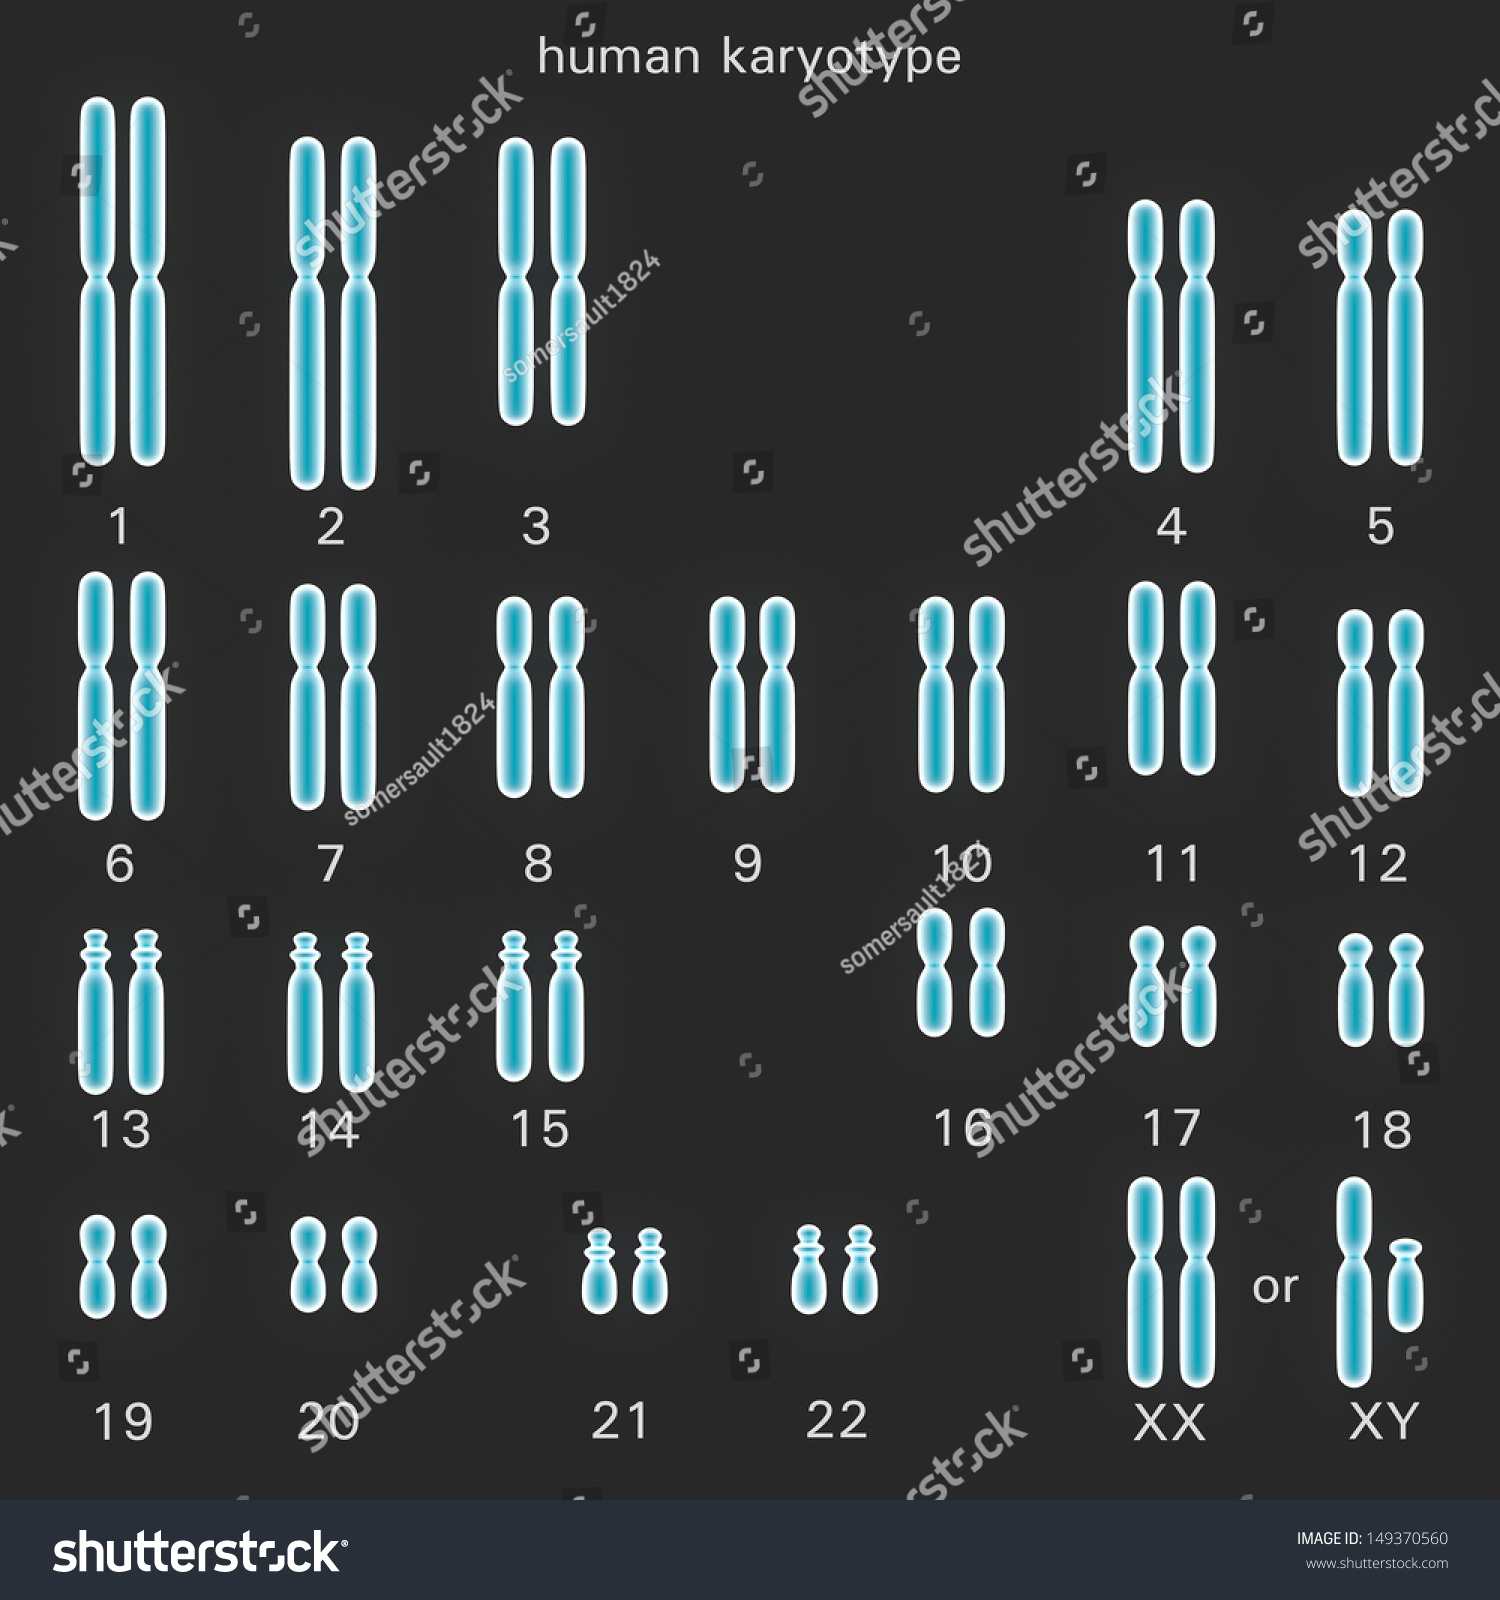 Normal Human Karyotype Which Diploid Pairing Stock Illustration